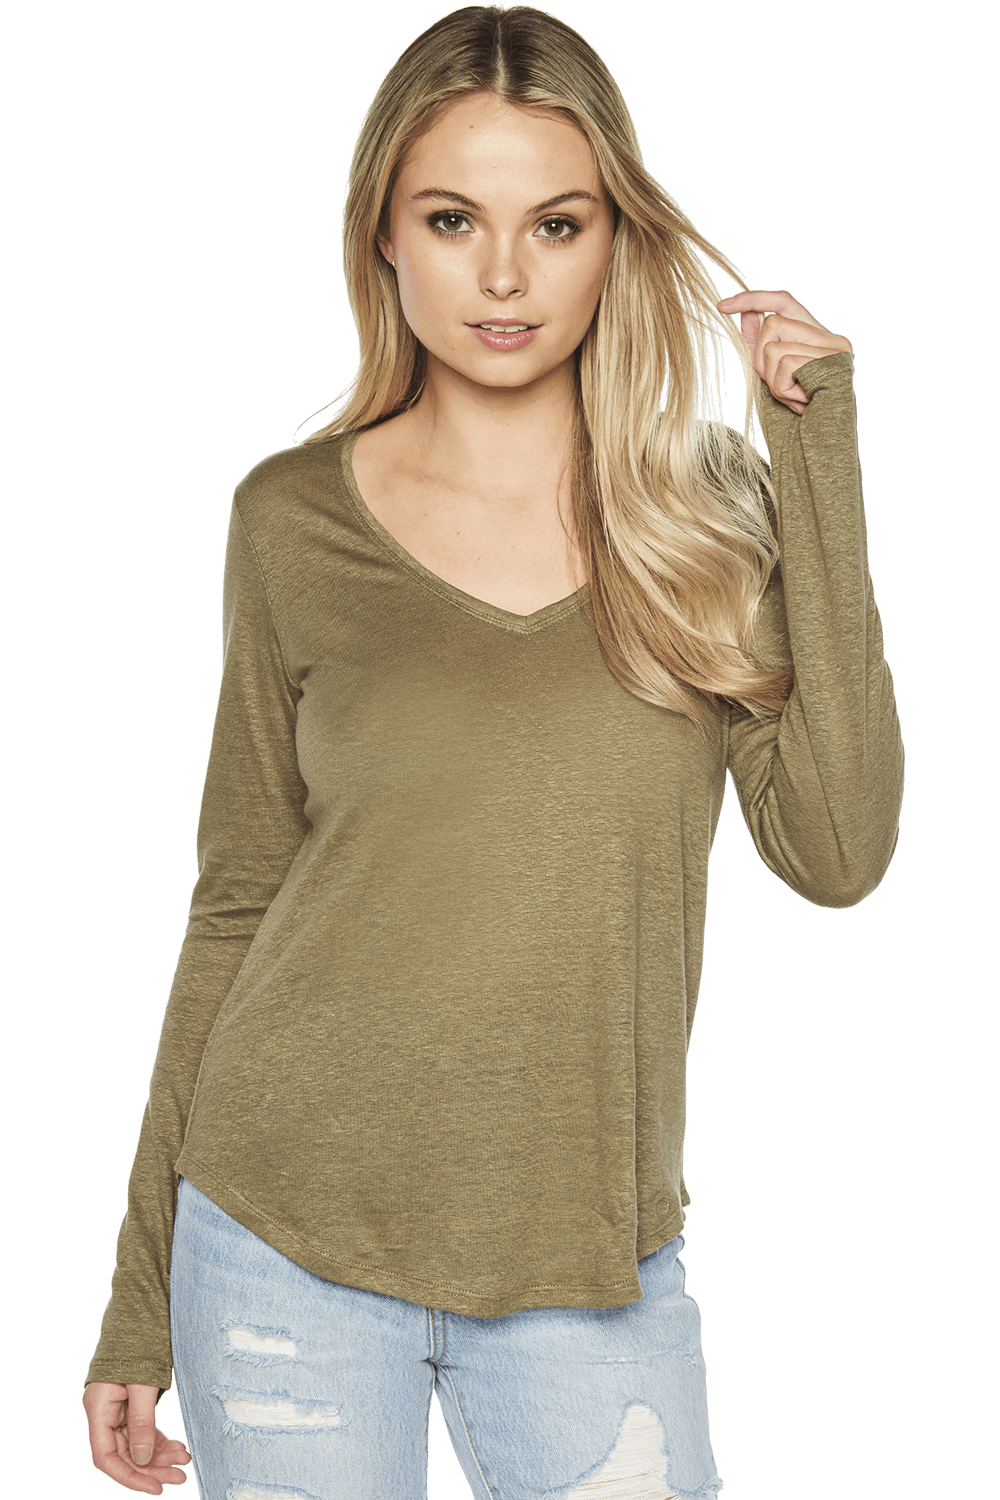 Charlotte Long Sleeve Top Ladies Sale Clothing Bardot